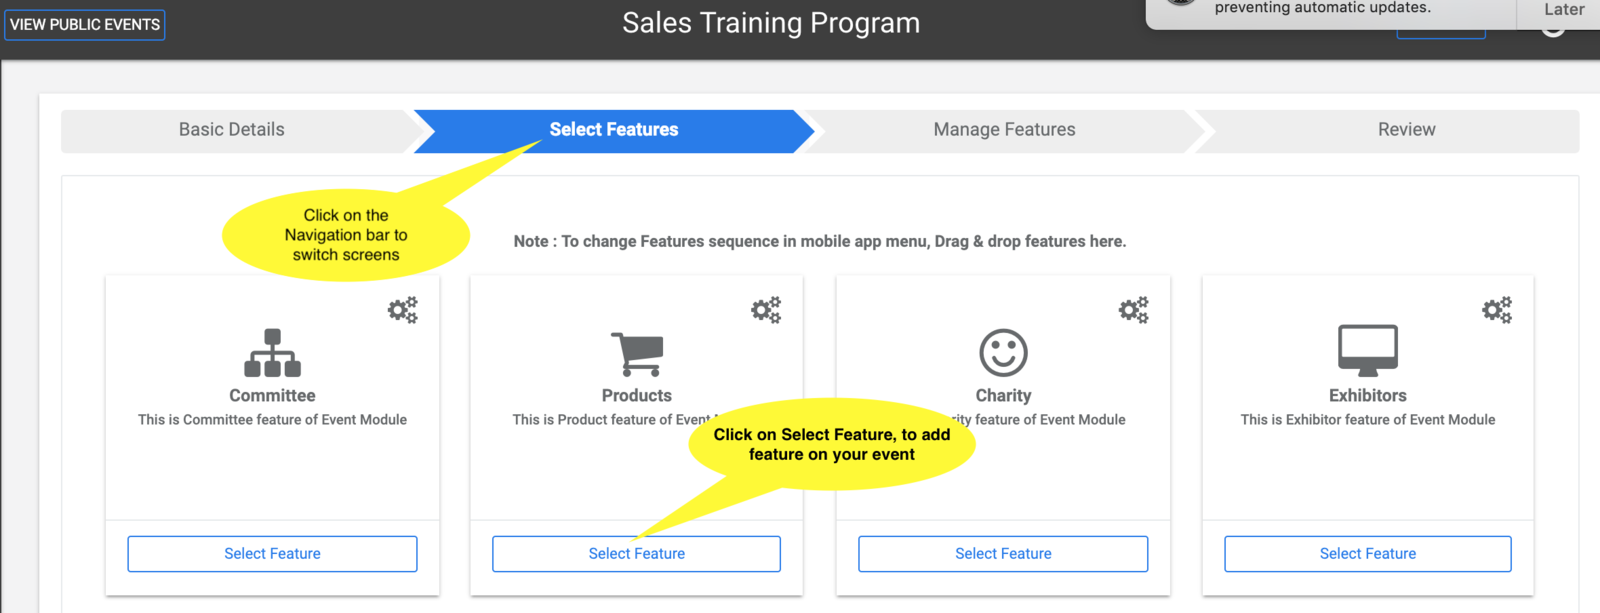 Click on Select Feature to add feature to your Event